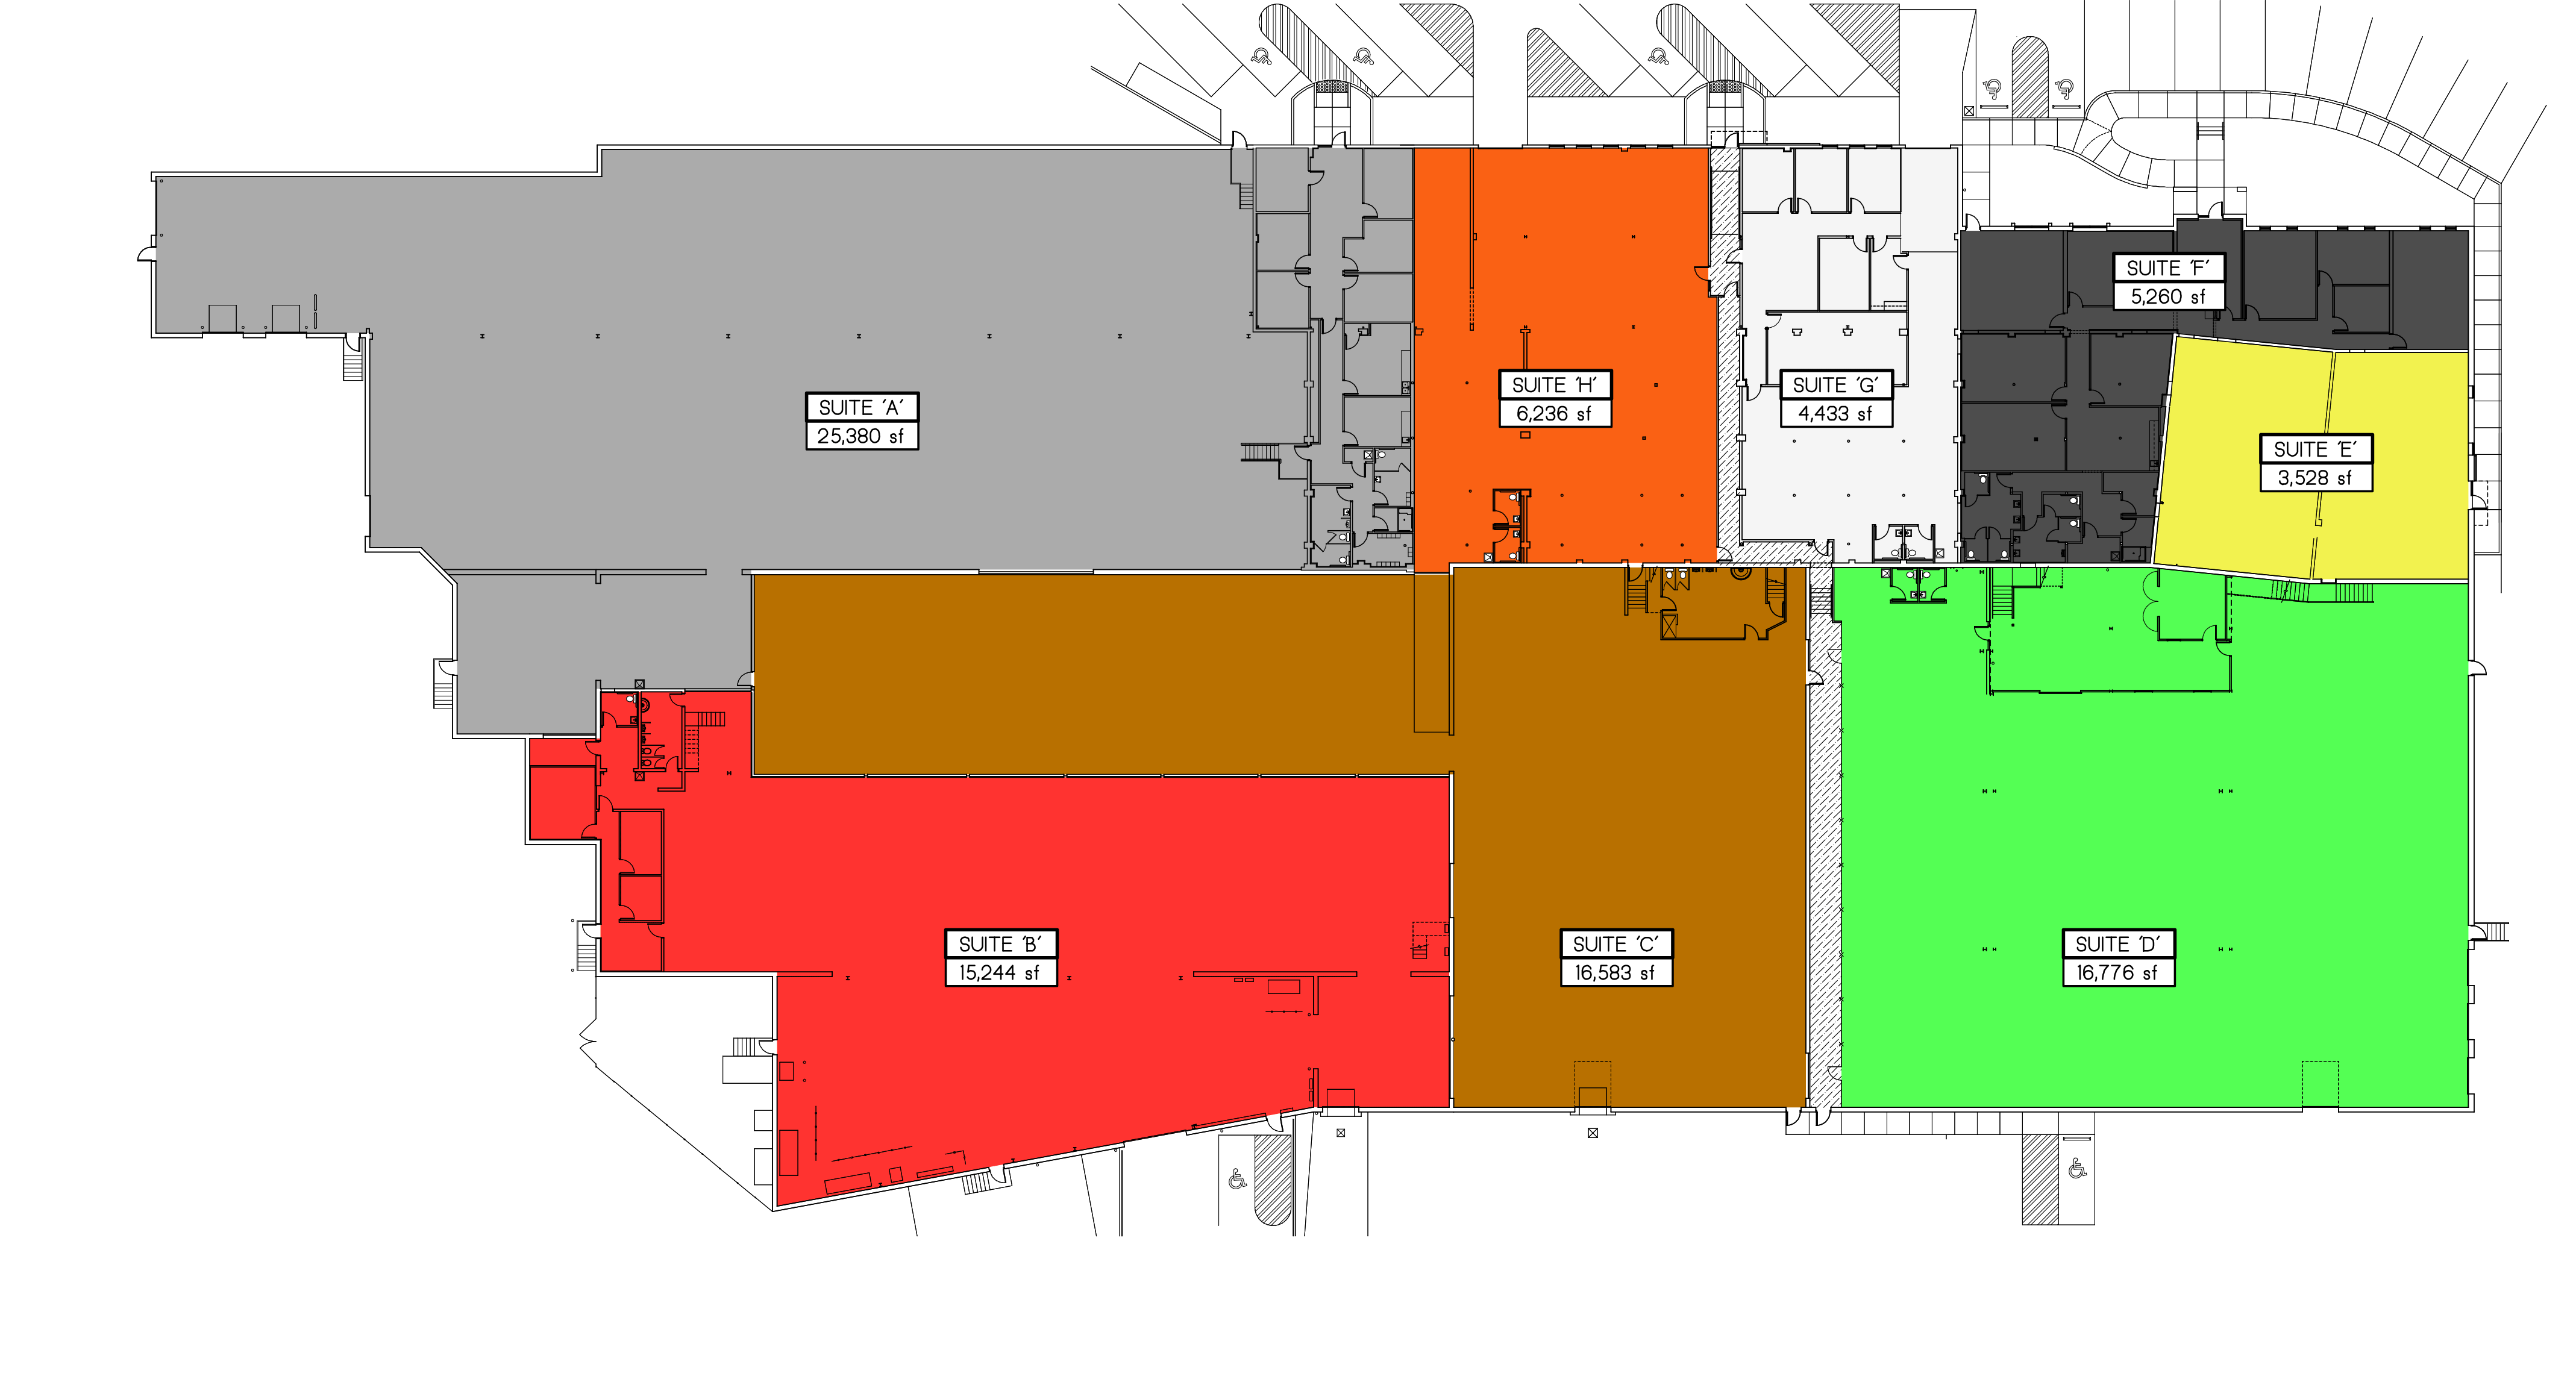 Whole complex floorplan